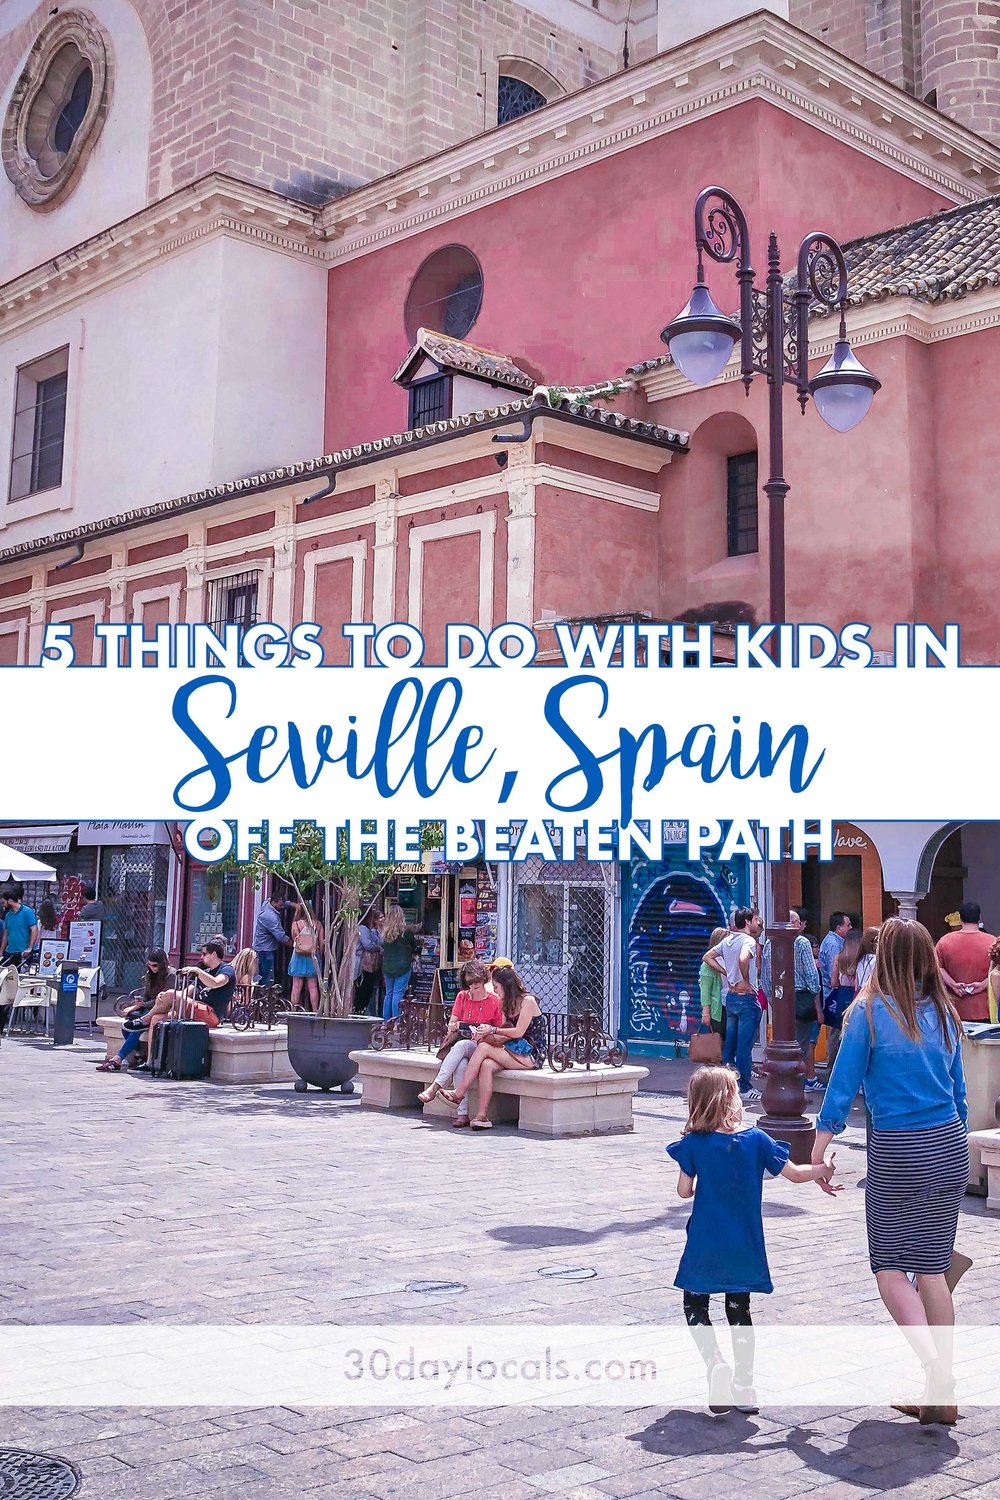 5 things to do off the beaten path in Seville Spain with kids. Make this vacation one to remember forever. #familyvacation #vacationideas